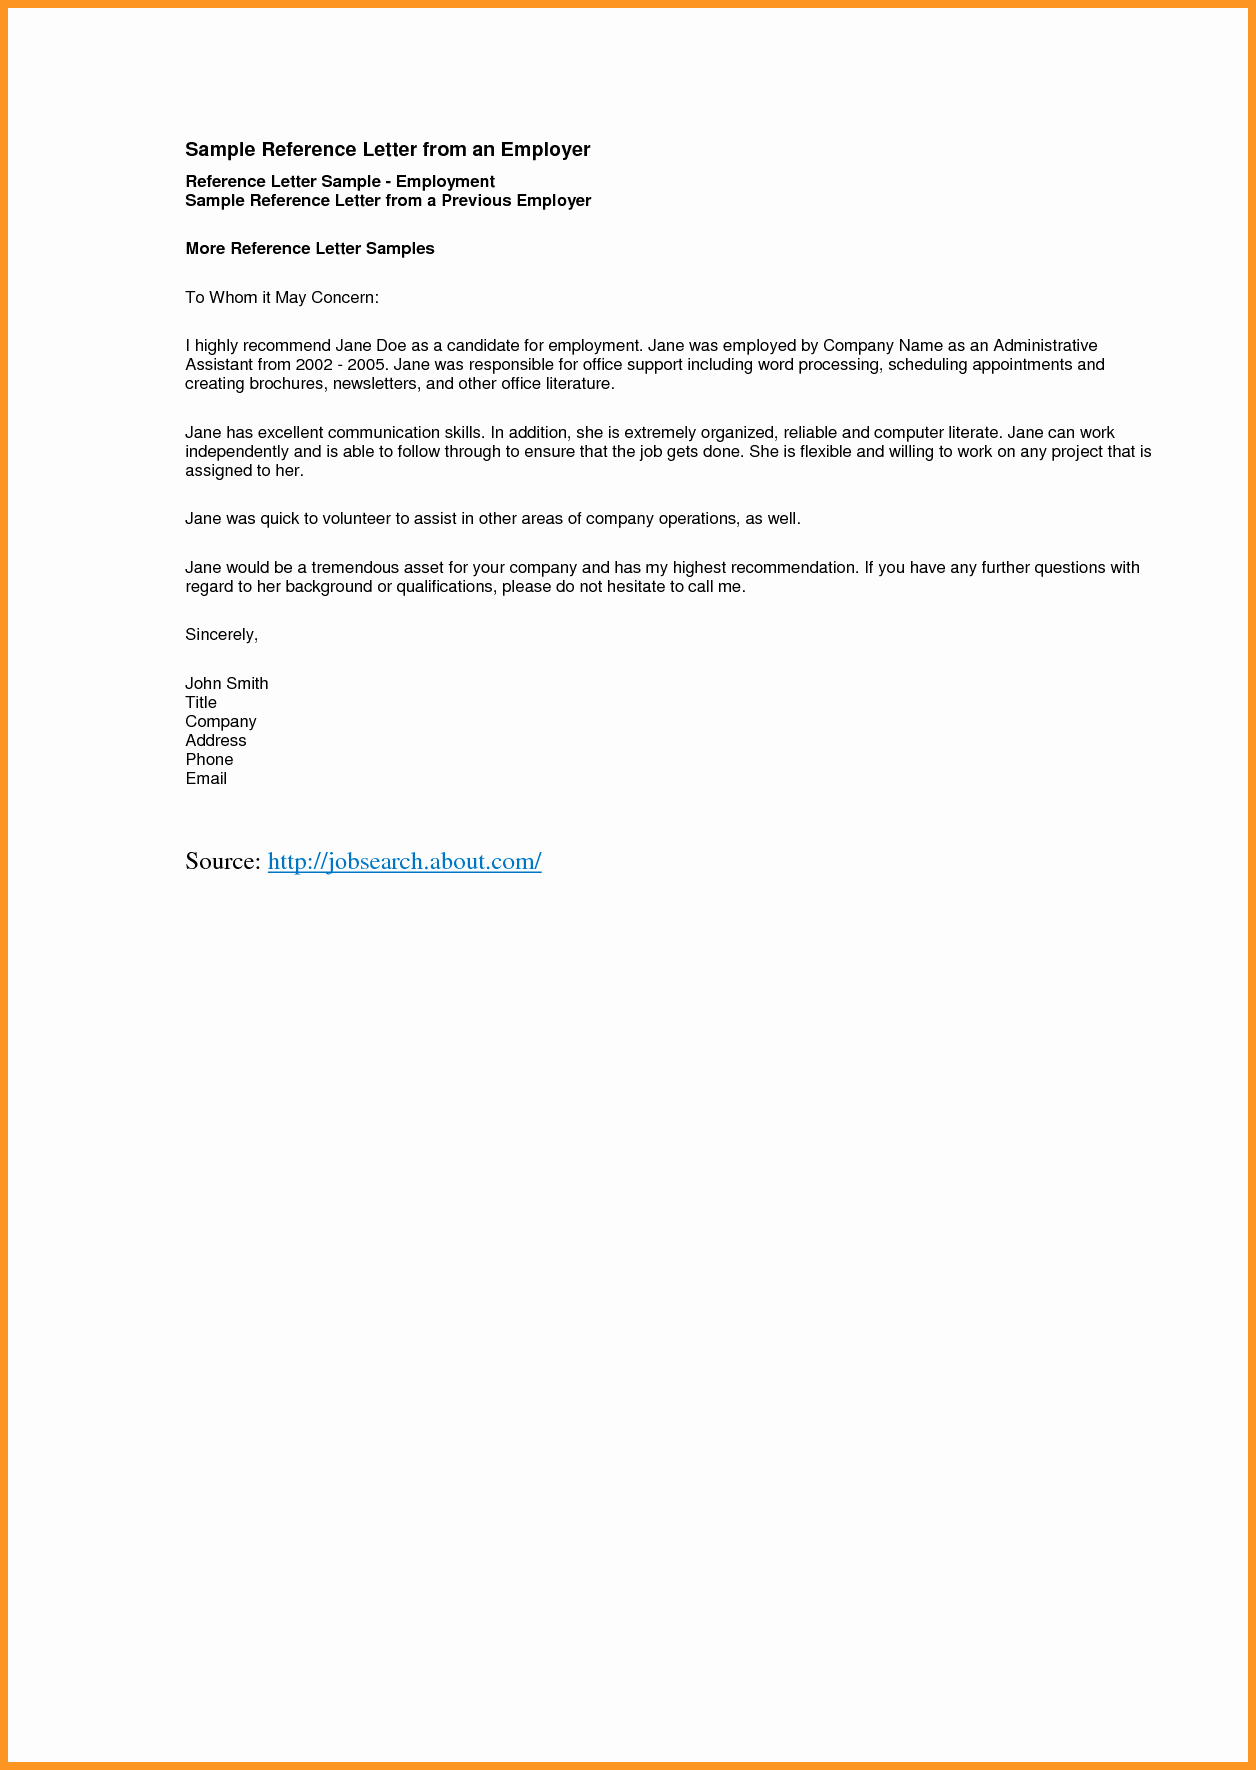 Job Recommendation Letter Sample Template Lovely 9 10 Re Mendation Letter Samples for Employment